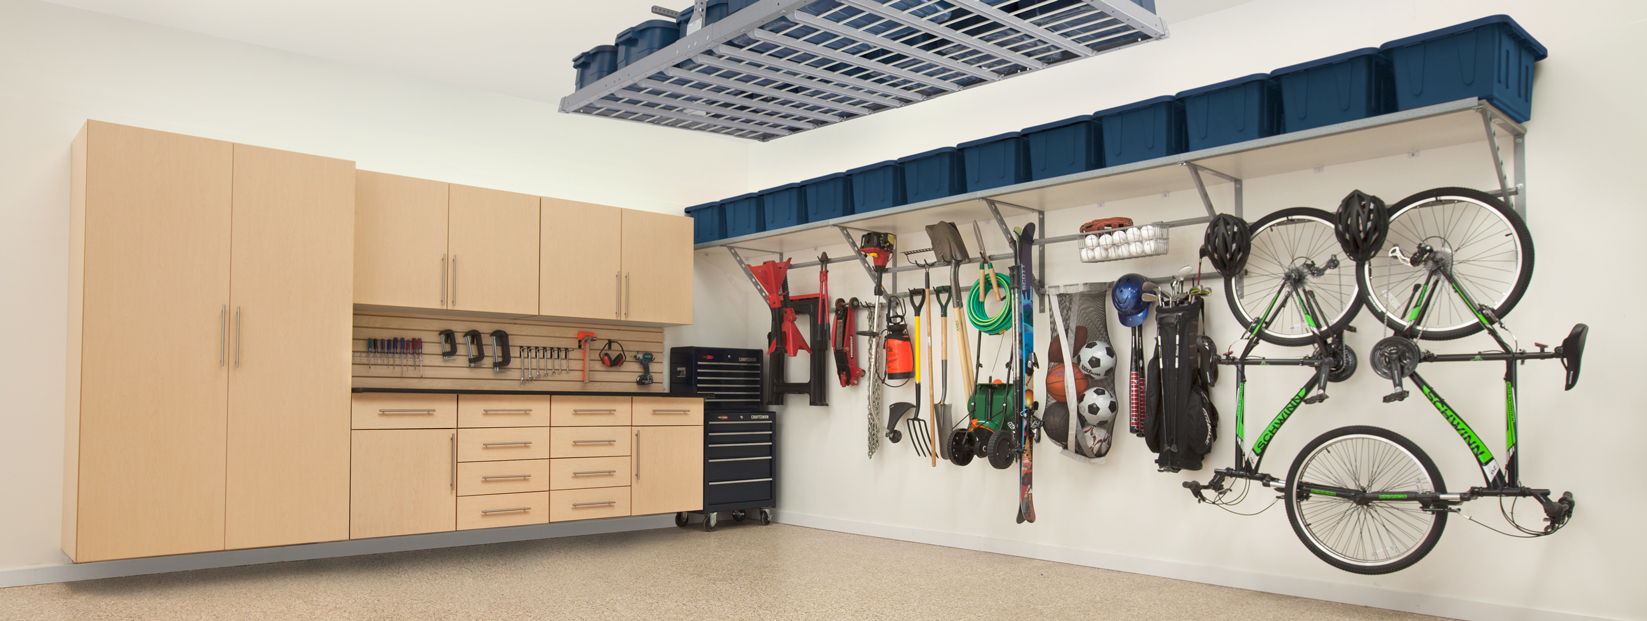 garage storage doctor phillips